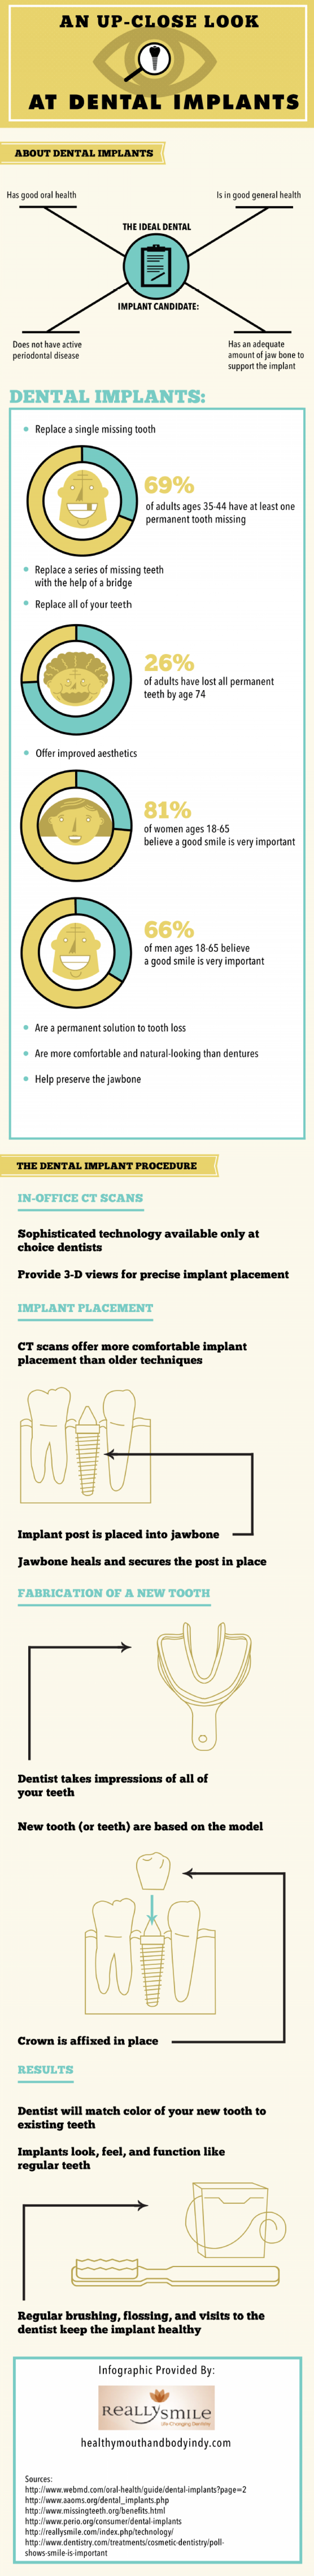 An Up-Close Look at Dental Implants Infographic